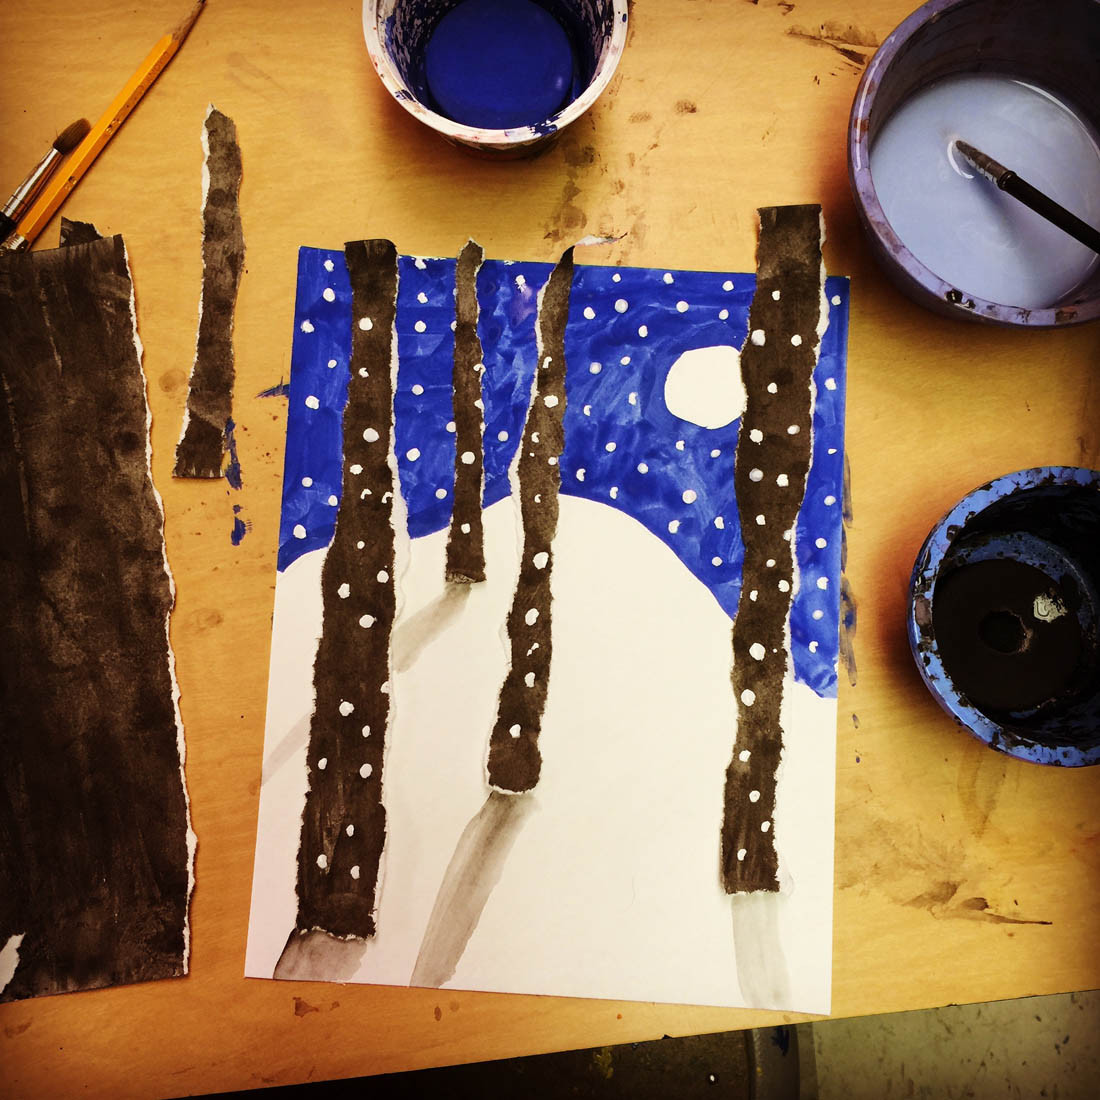 Best ideas about Winter Art Projects For Kids . Save or Pin Torn Winter Tree Art Art Projects for Kids Now.